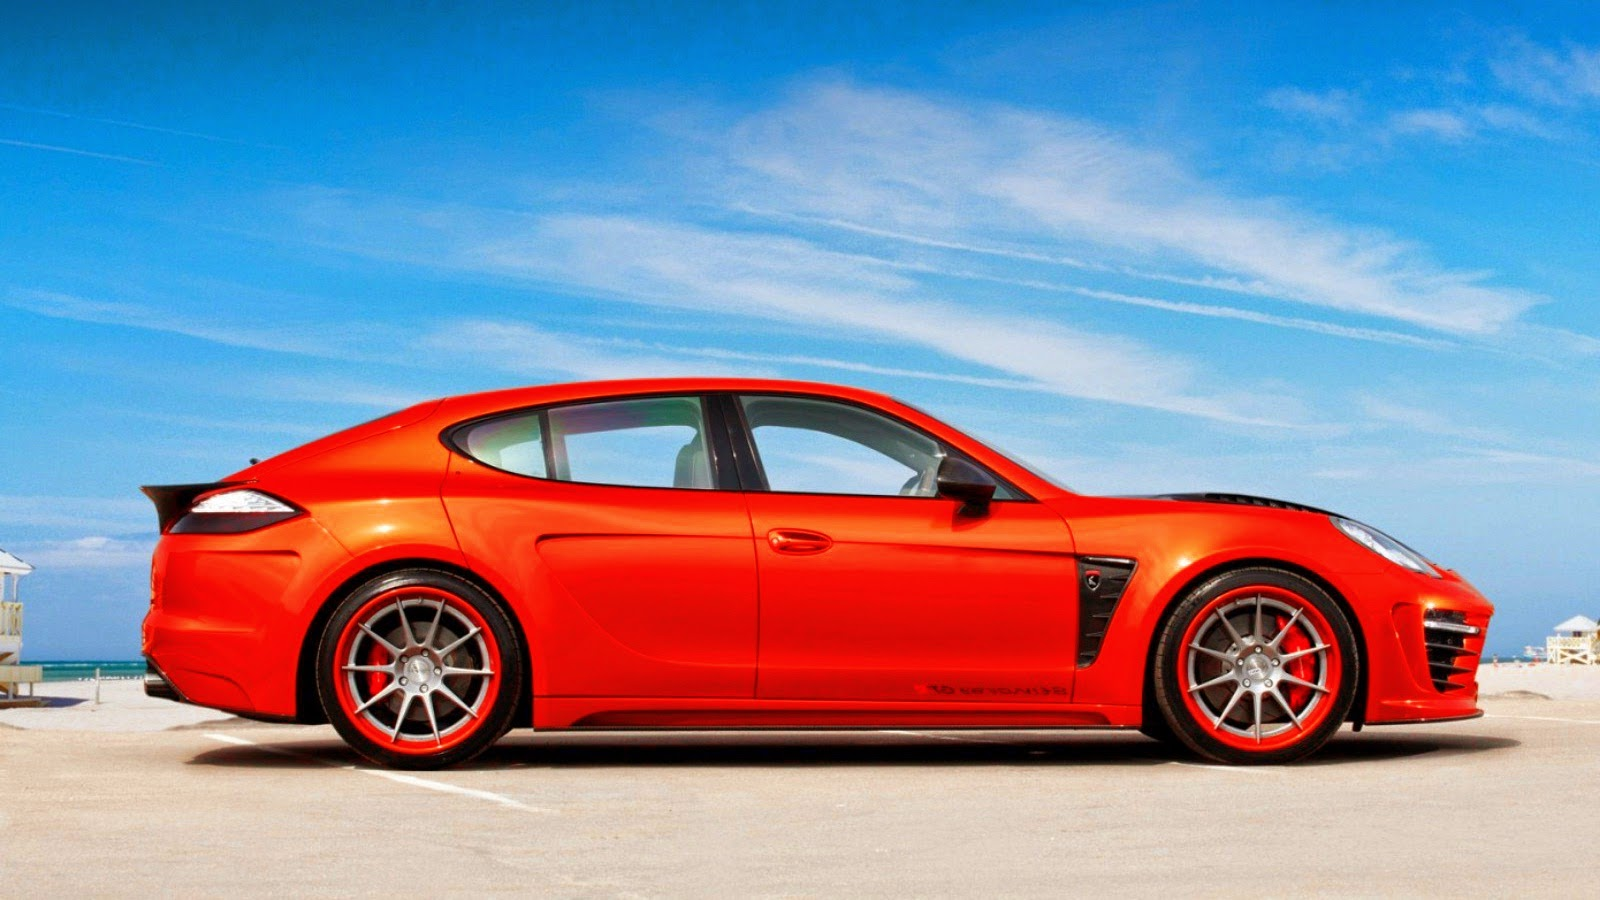 Porsche Panamera Stingray GTR Orange side